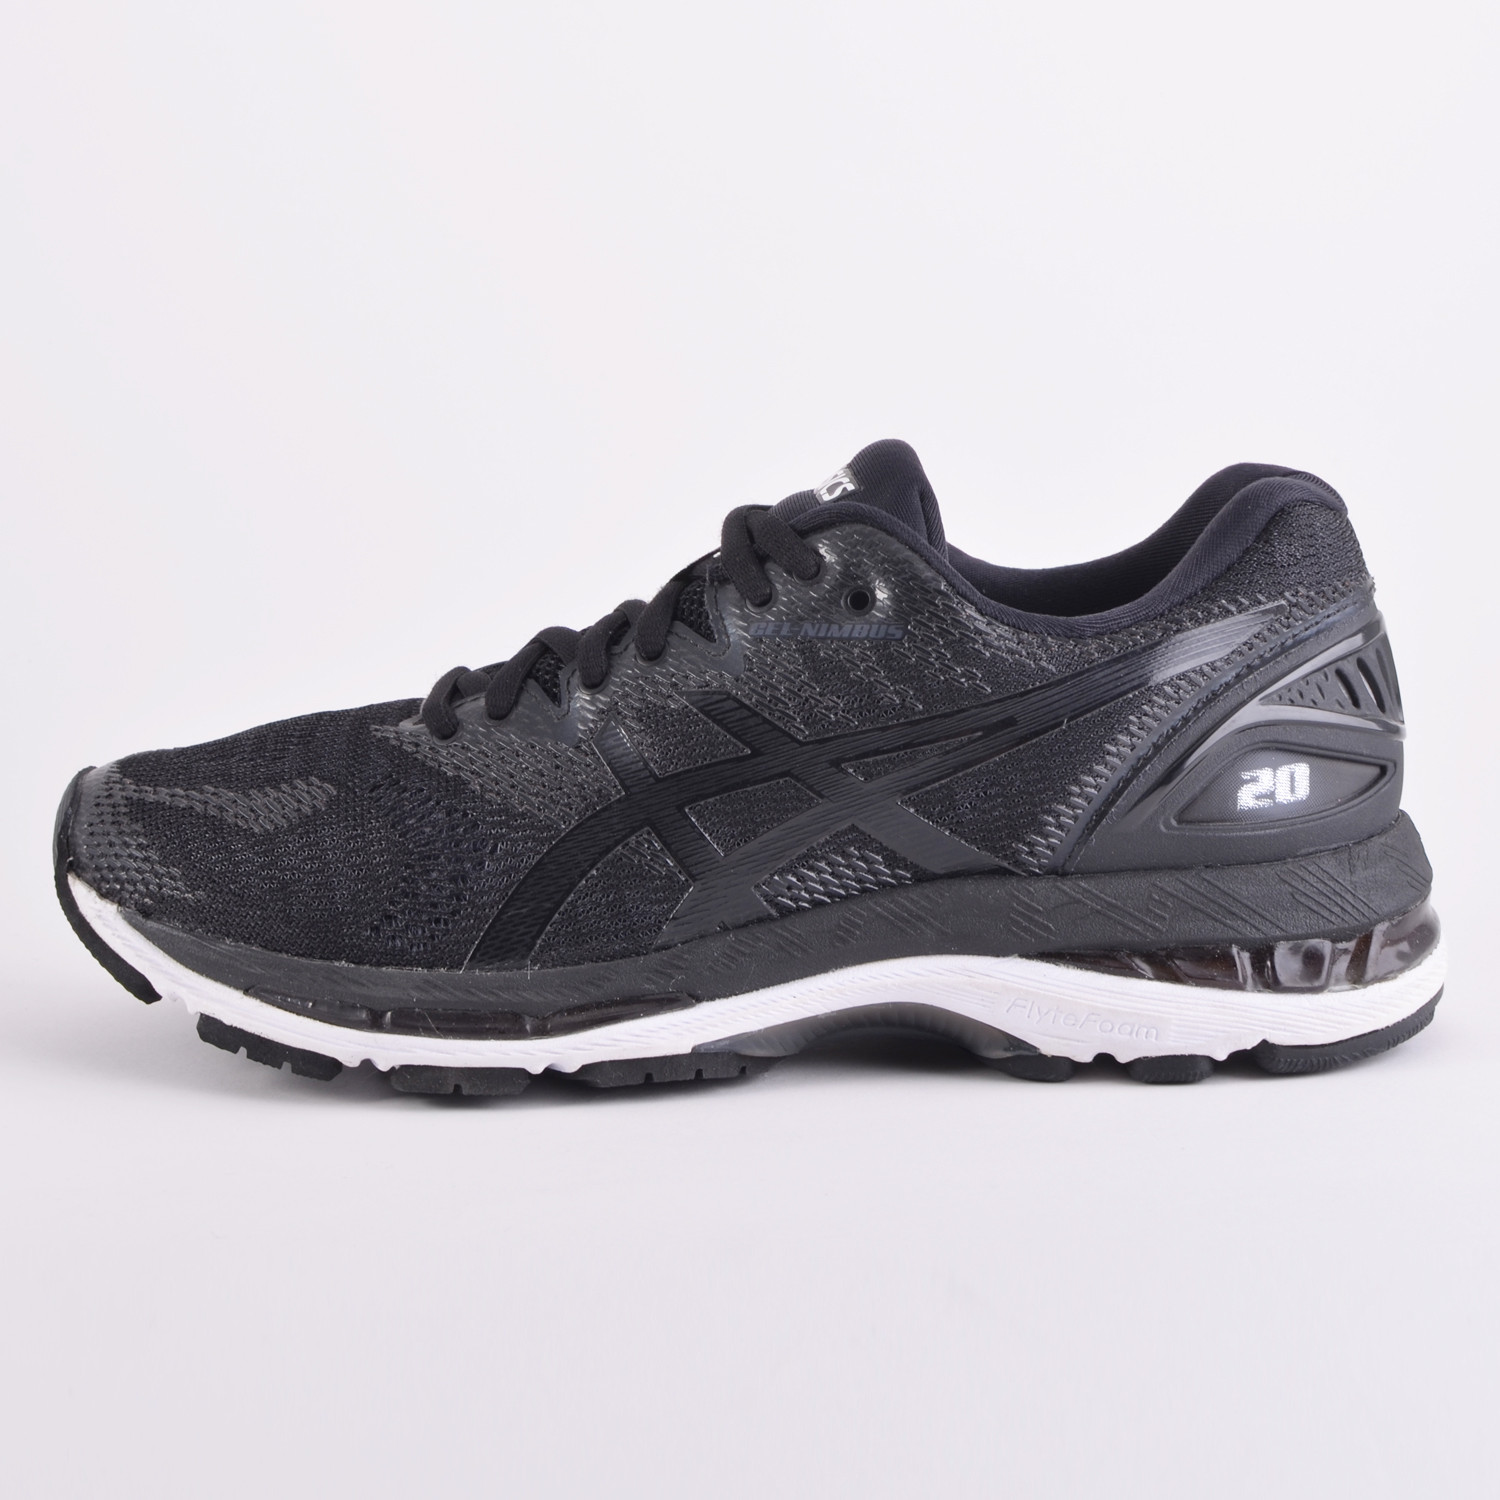 Asics Gel-Nimbus 20 Women's Shoe